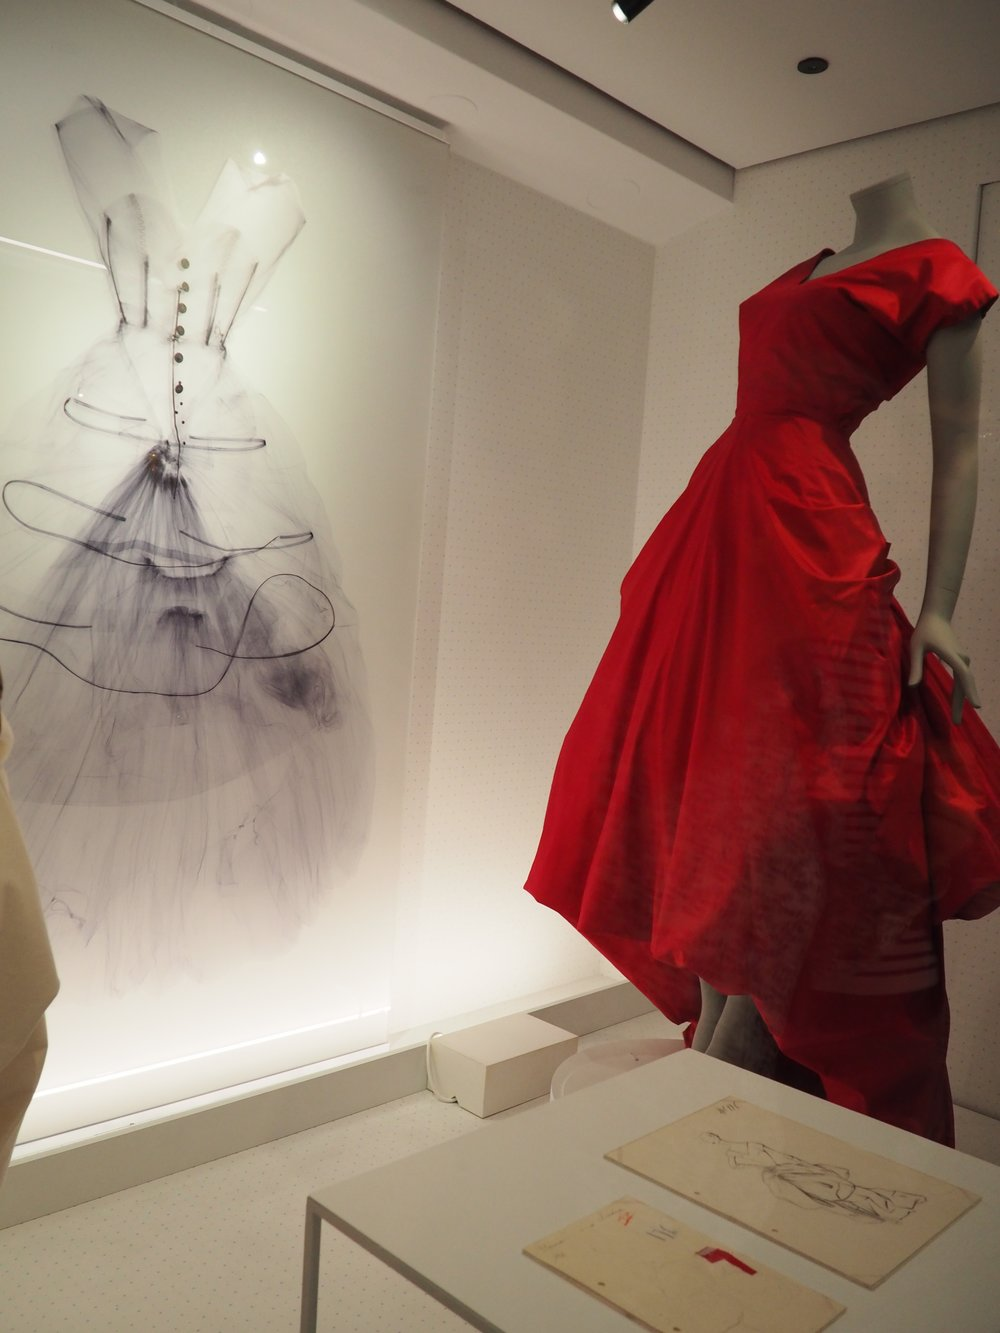 Balenciaga Exhibit at the V&A